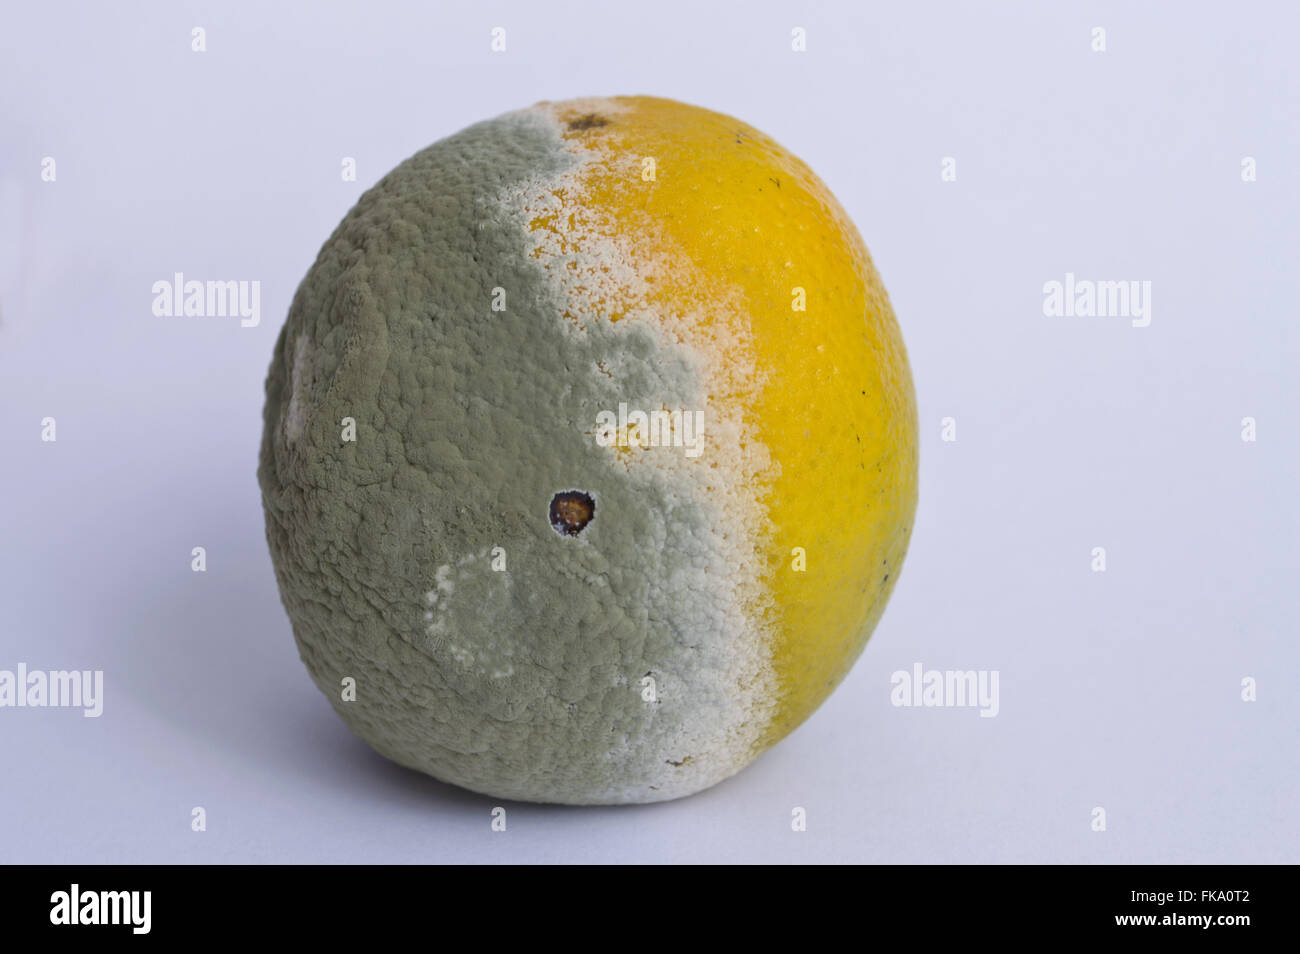 Orange with mold - Stock Image